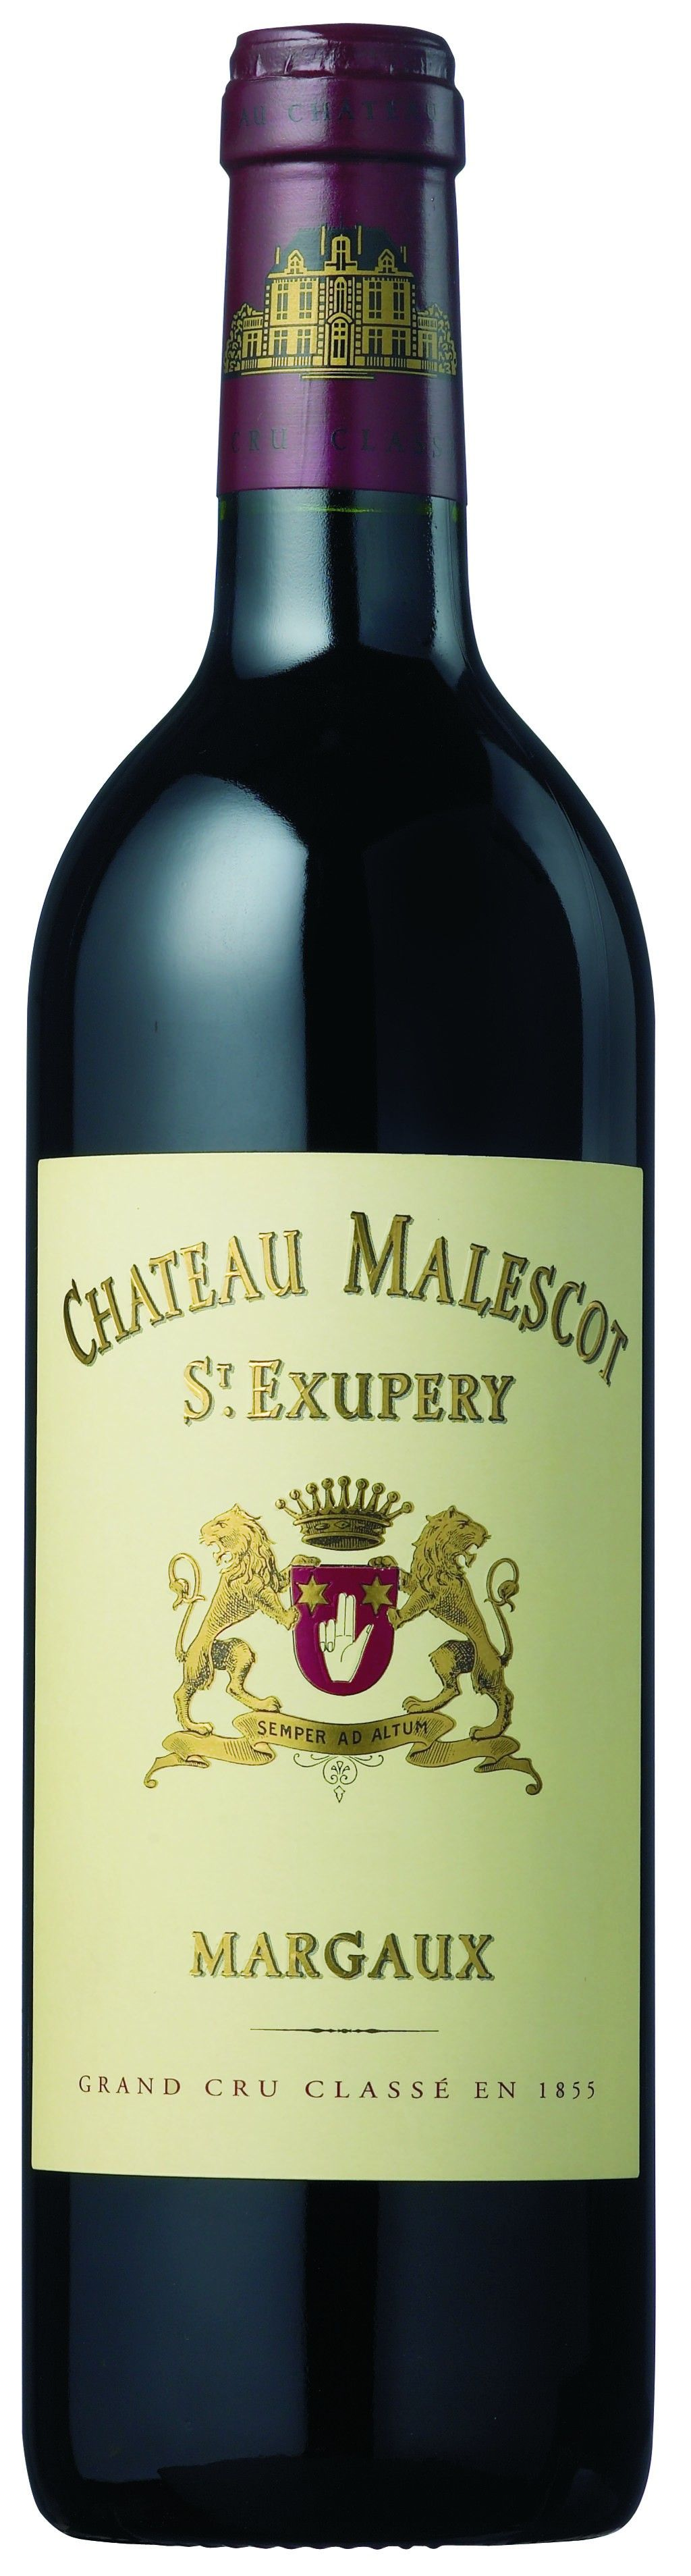 Chateau Malescot-St-Exupery, 2008